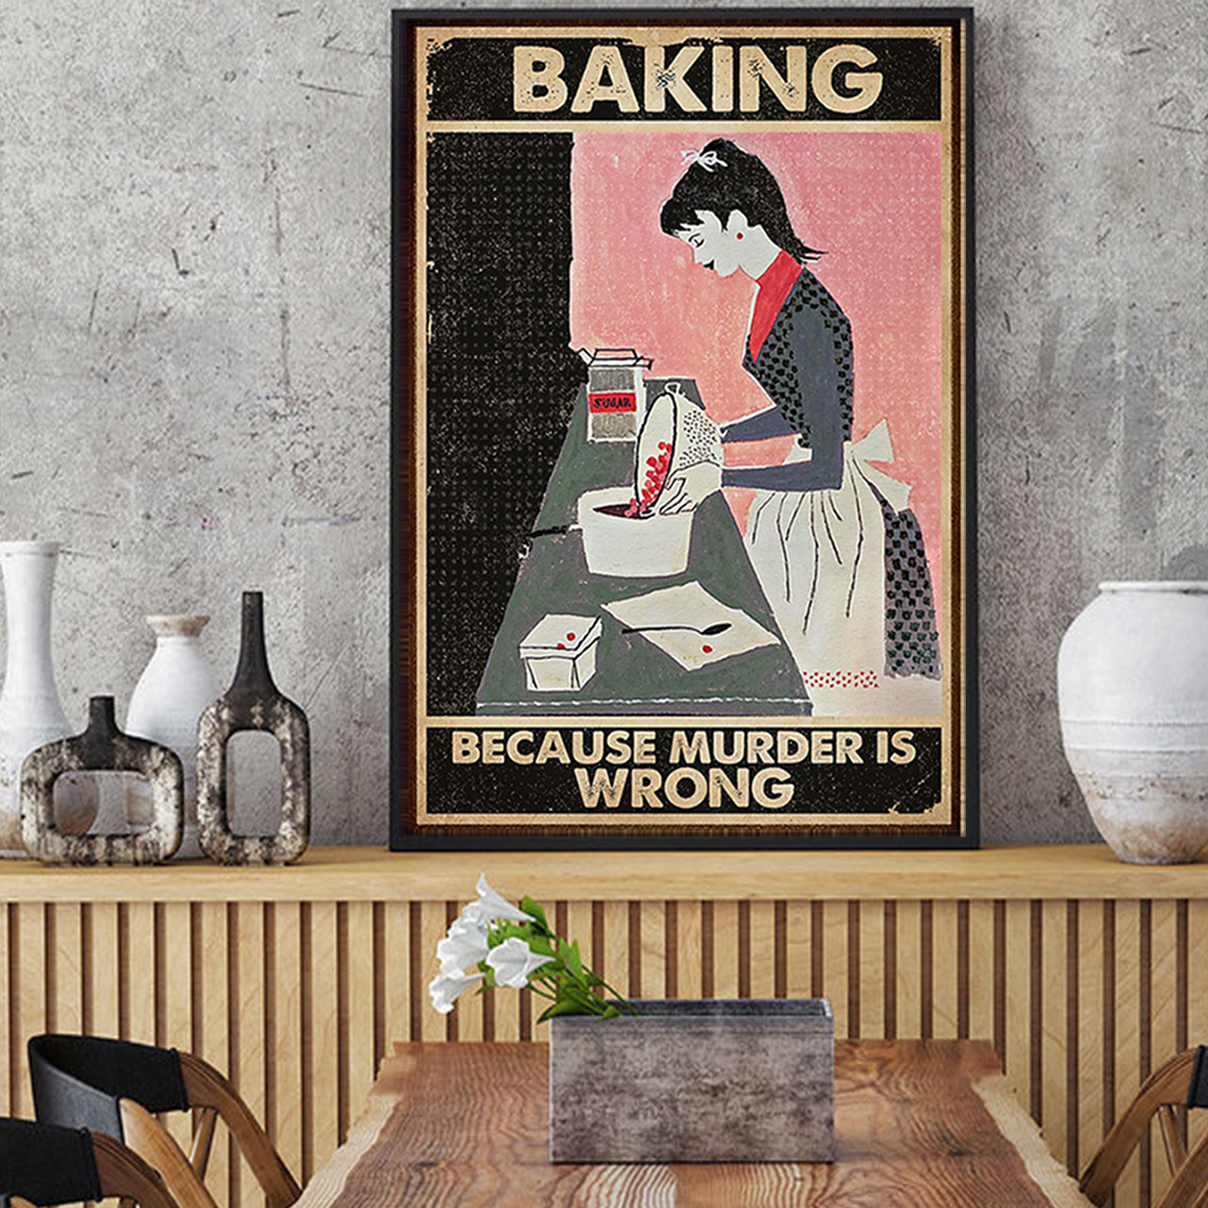 BAKING BECAUSE MURDER IS WRONG POSTER A2